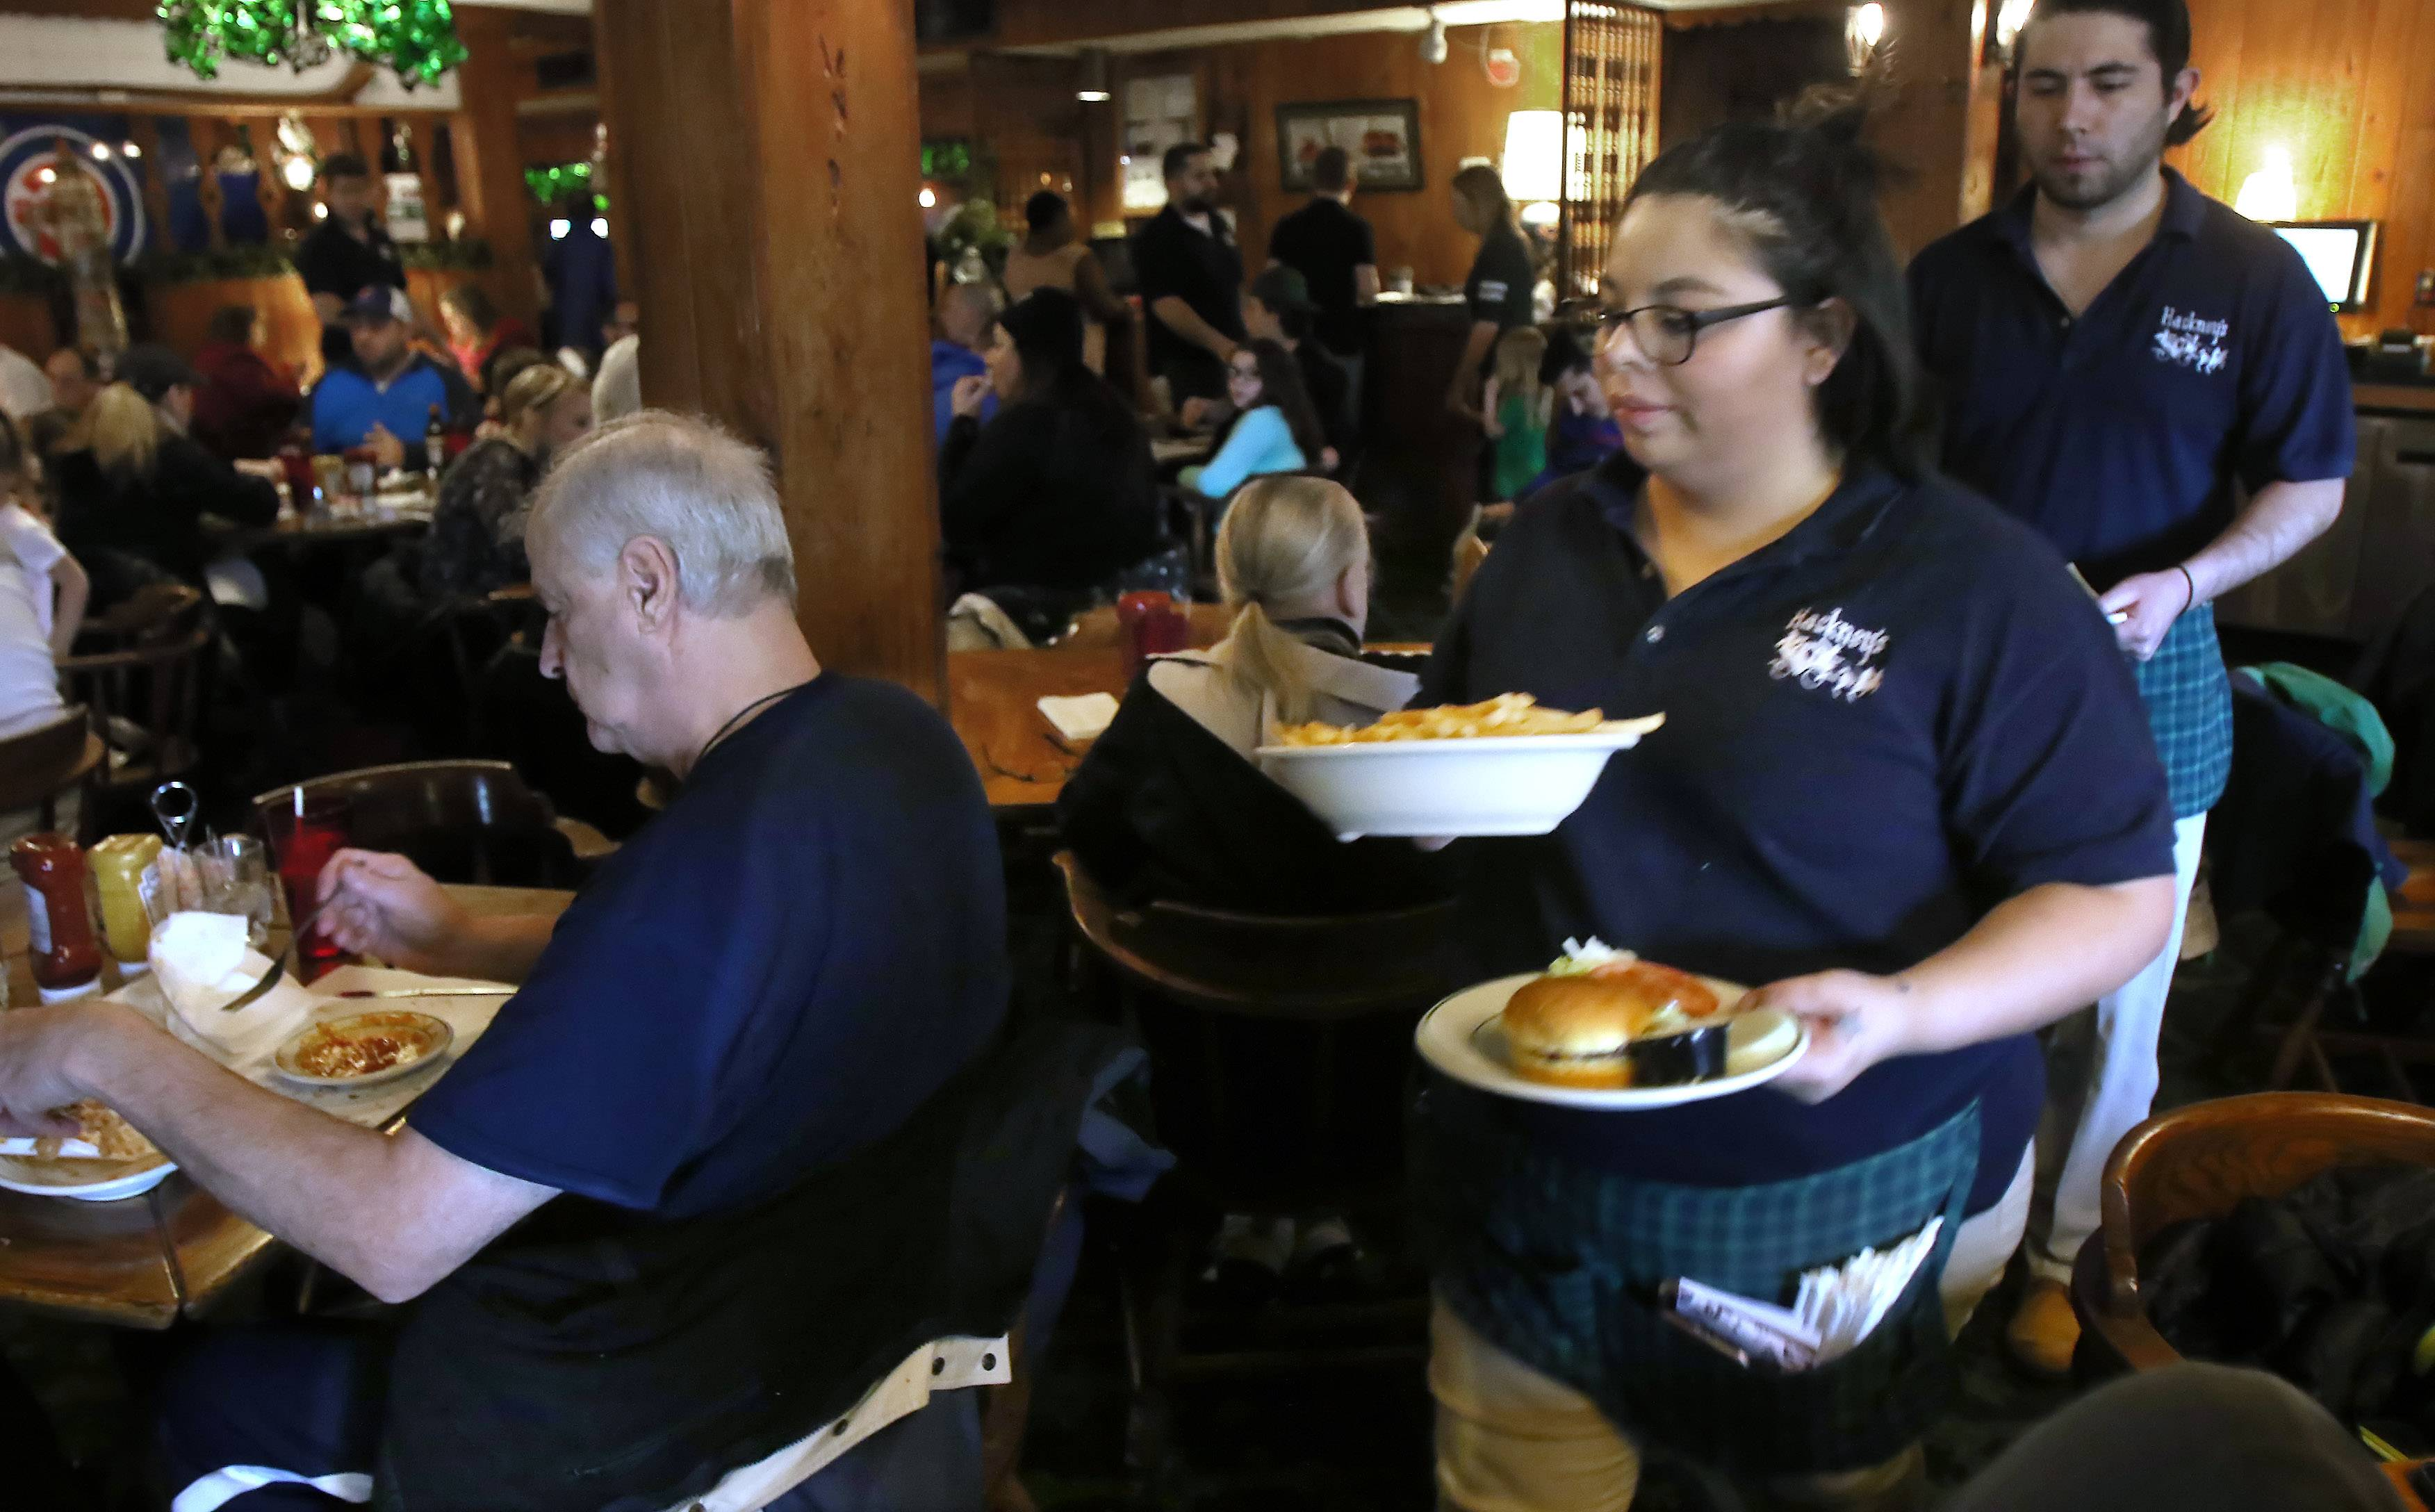 Waitress Laura Colorado delivers food to a table Sunday, the last day of business for Hackney's in Lake Zurich. After a 48-year run, the restaurant's owners decided to close it for good Sunday.